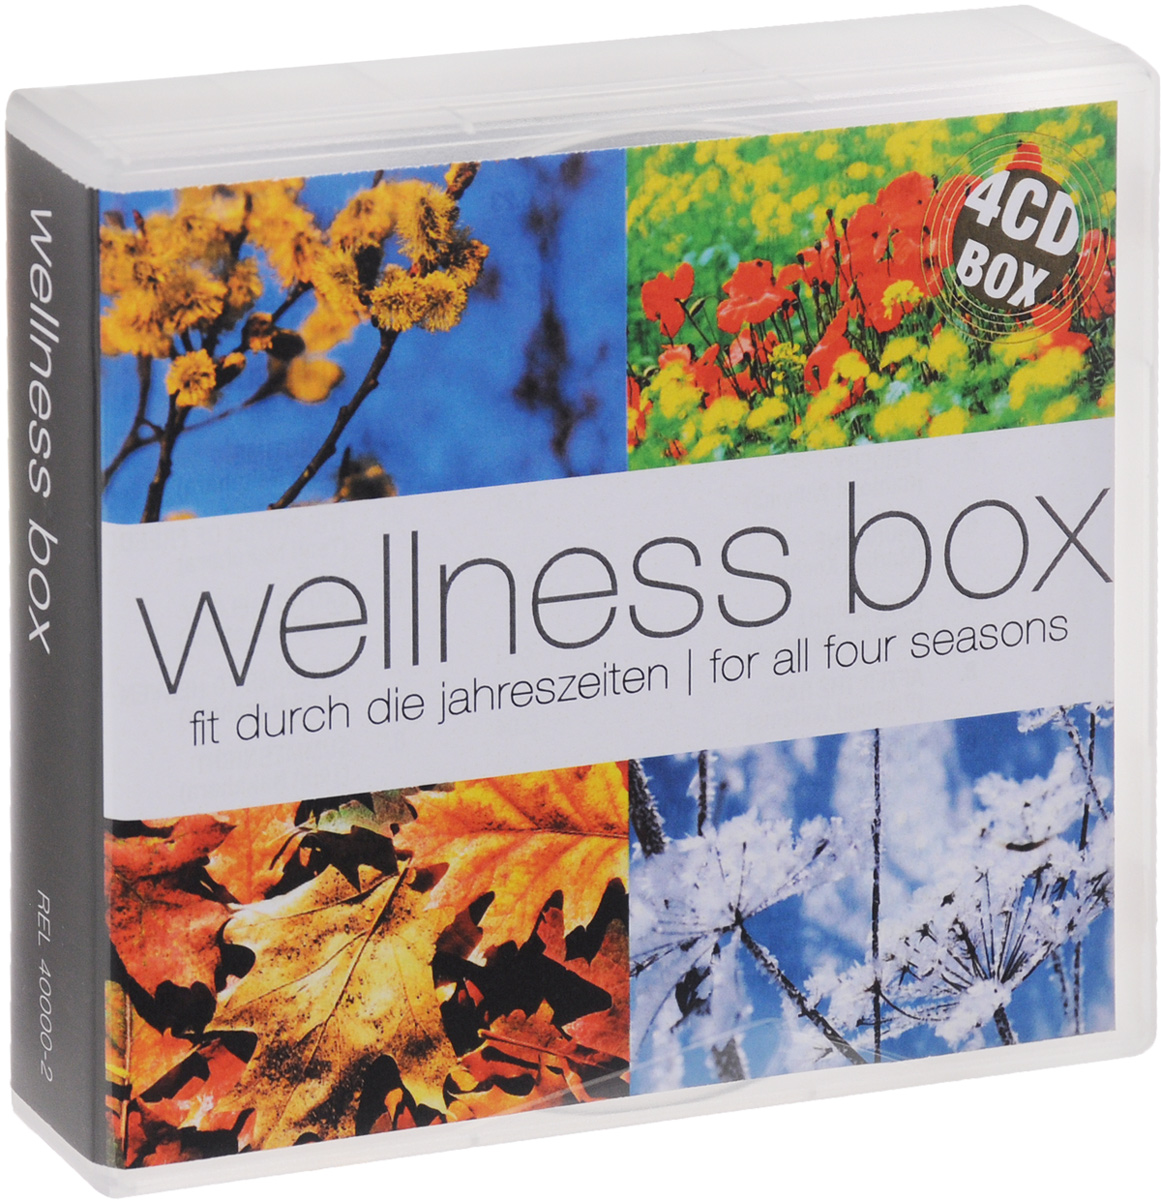 Wellness Box (4 CD)